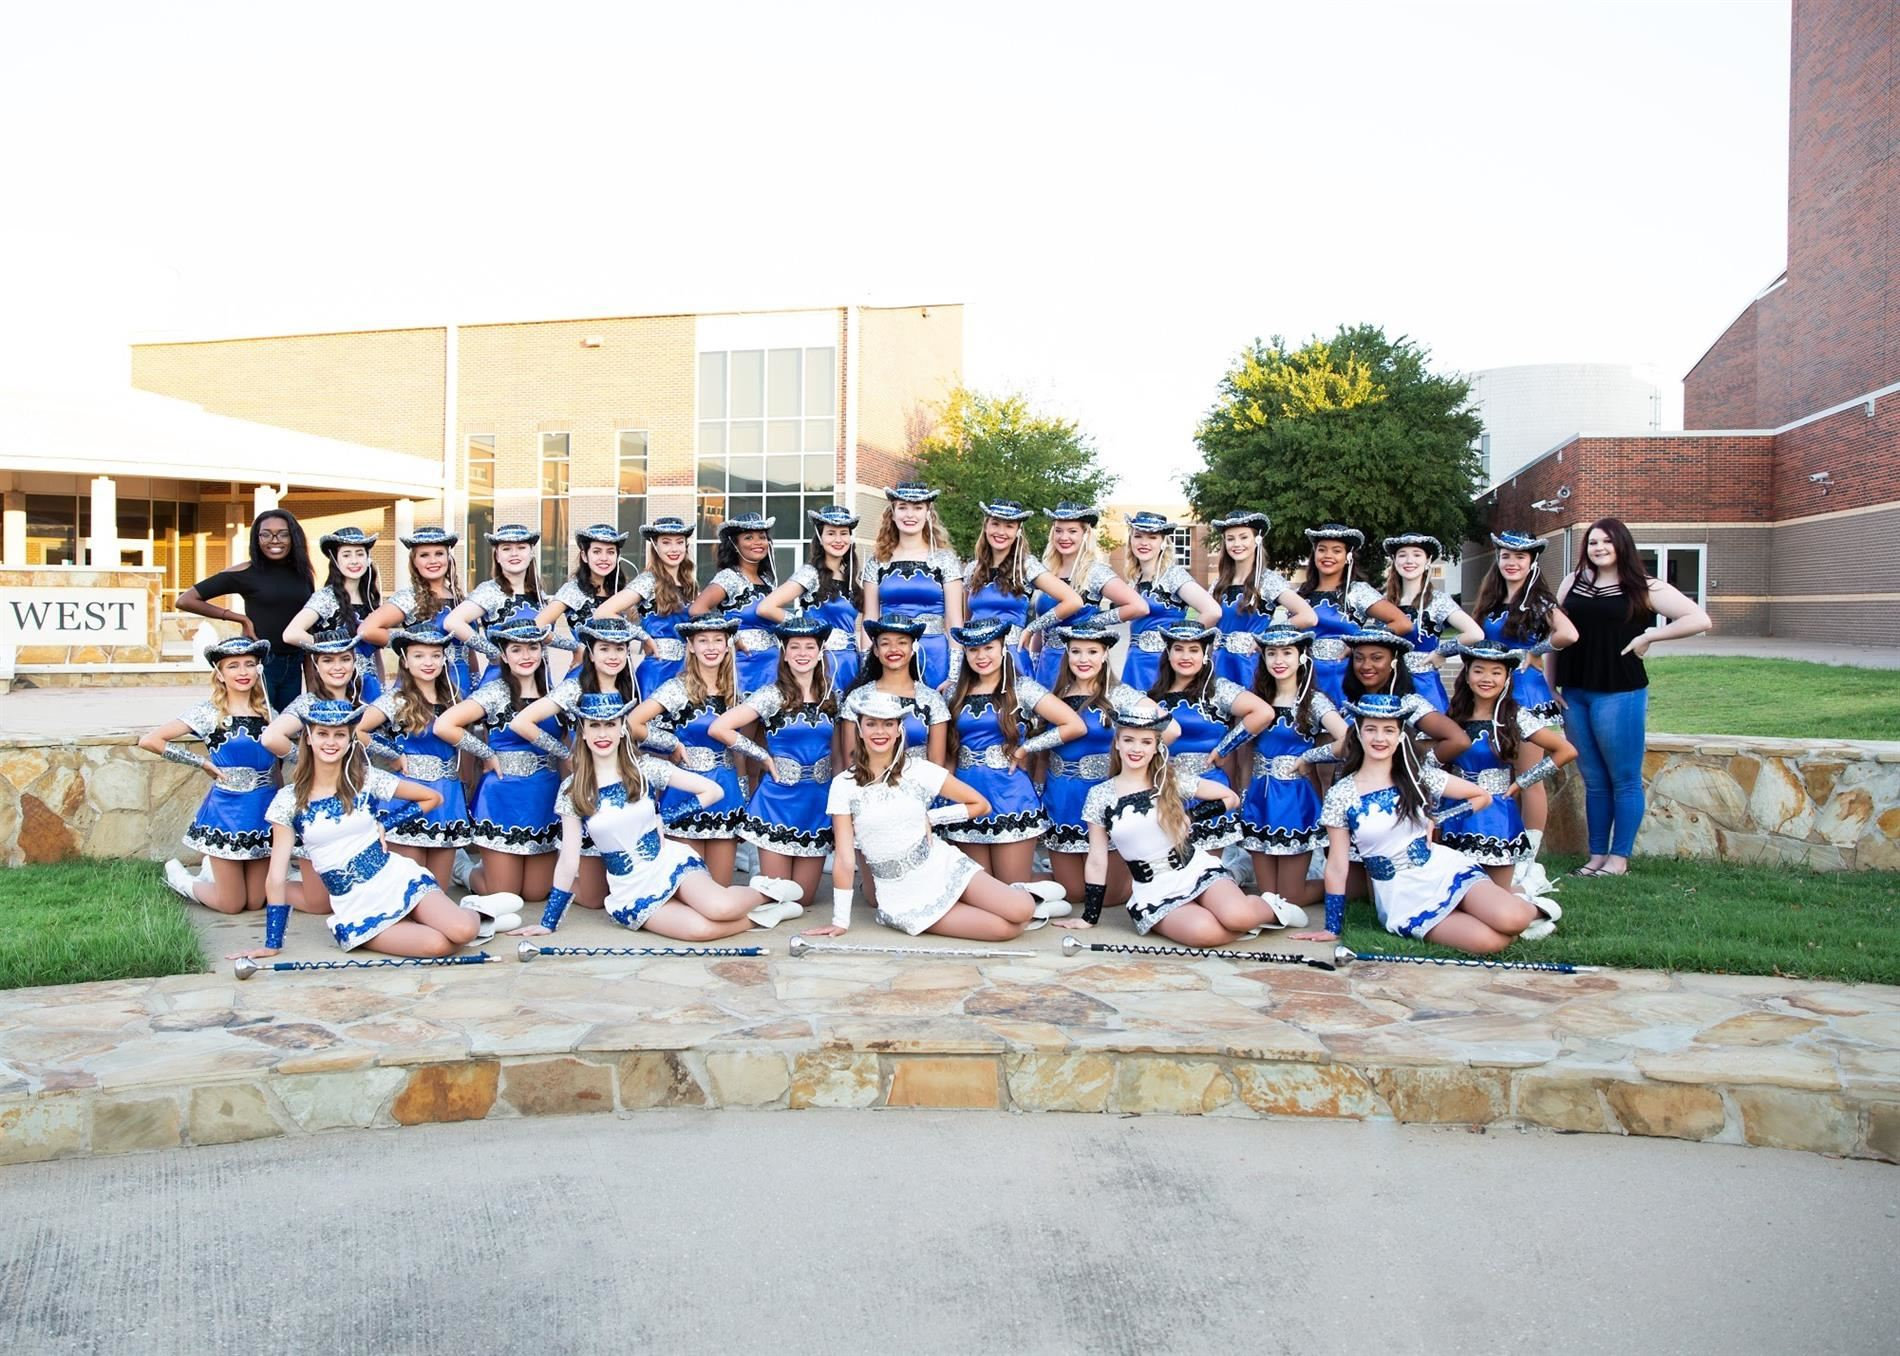 Plano West Drill Team